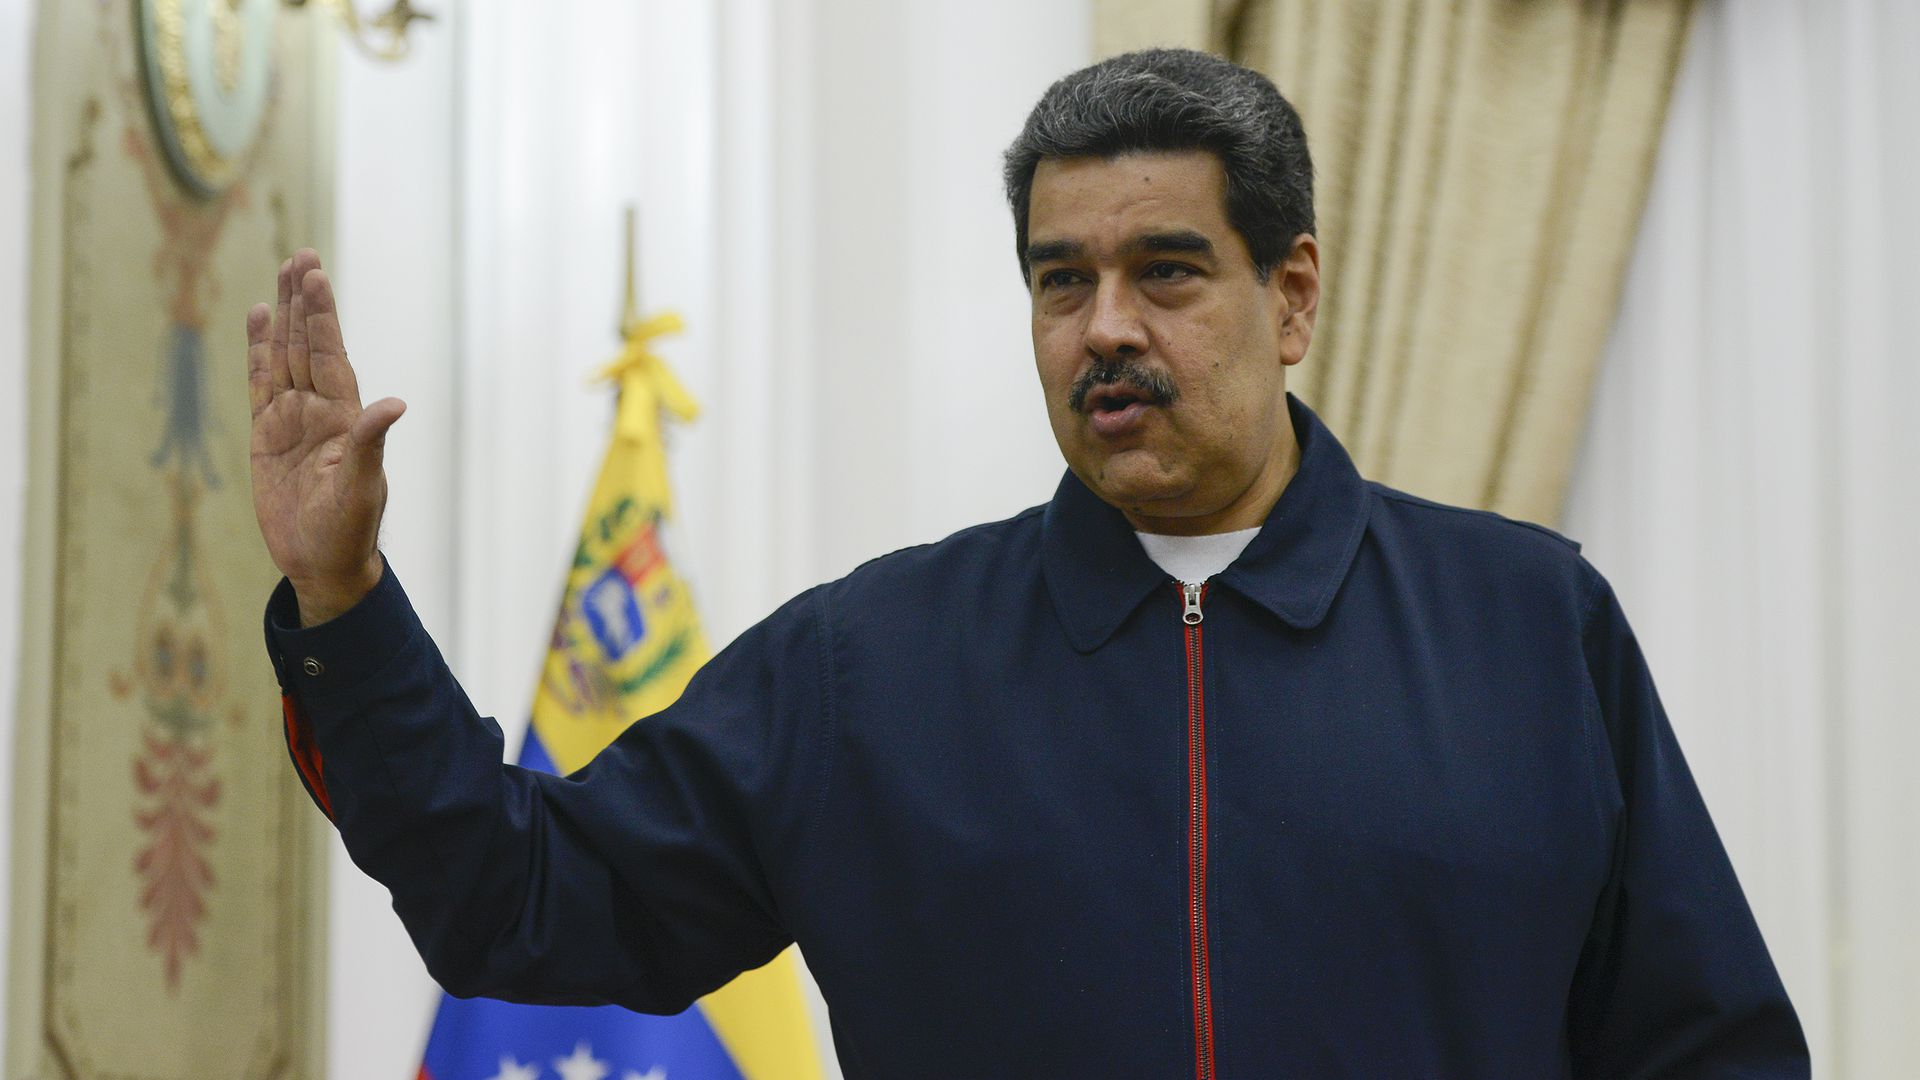 Nicolas Maduro (R) President of Venezuela speaks prior a meeting with EU special adviser for Venezuela